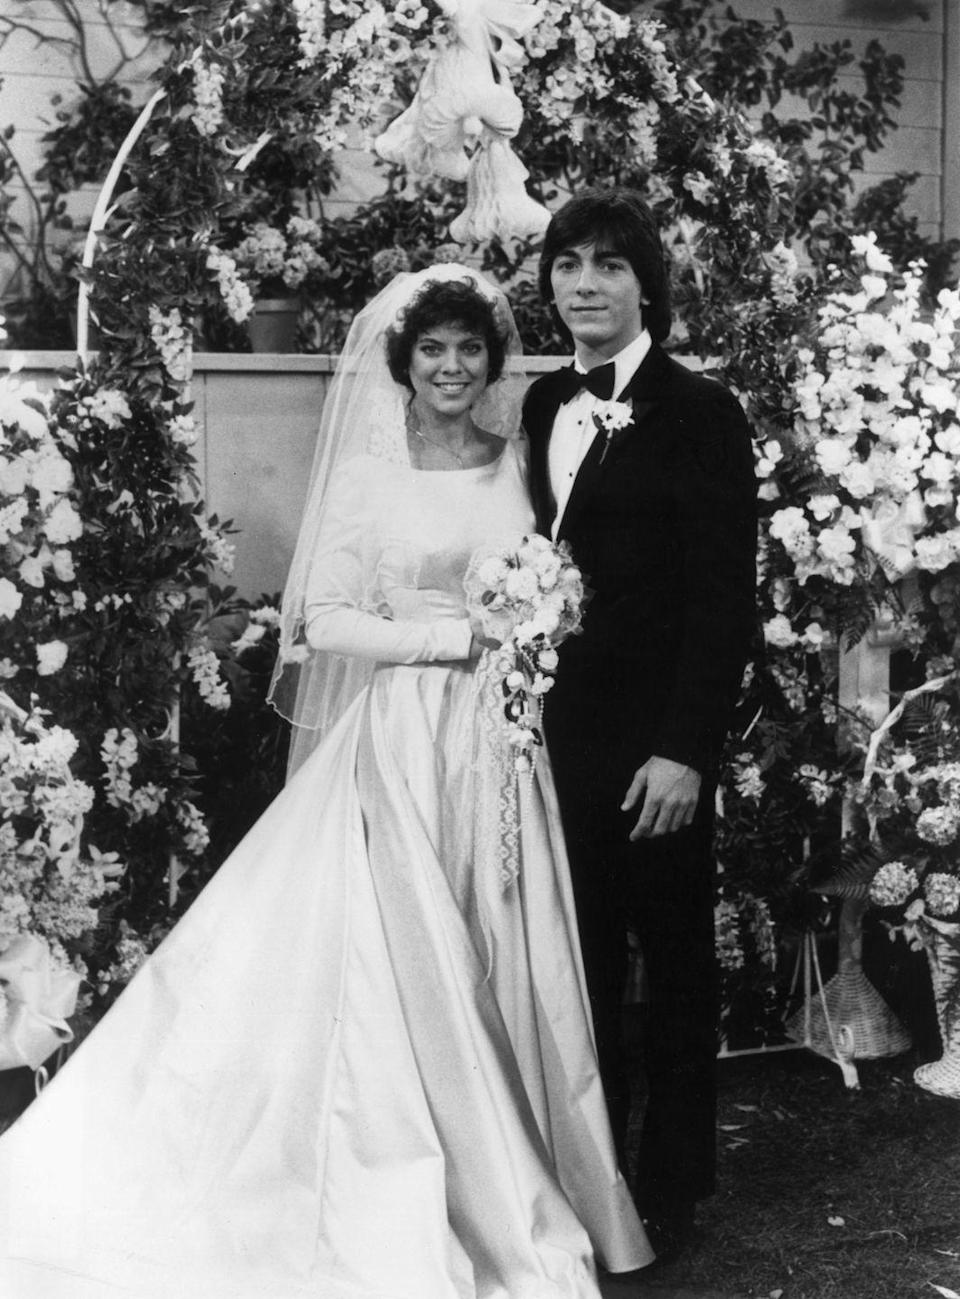 <p>By the end of <em>Happy Days </em>it was official, Joanie loved Chachi. The couple were married in the series finale and the bride wore a long sleeve bateau neck satin gown with a waterfall bouquet. </p>